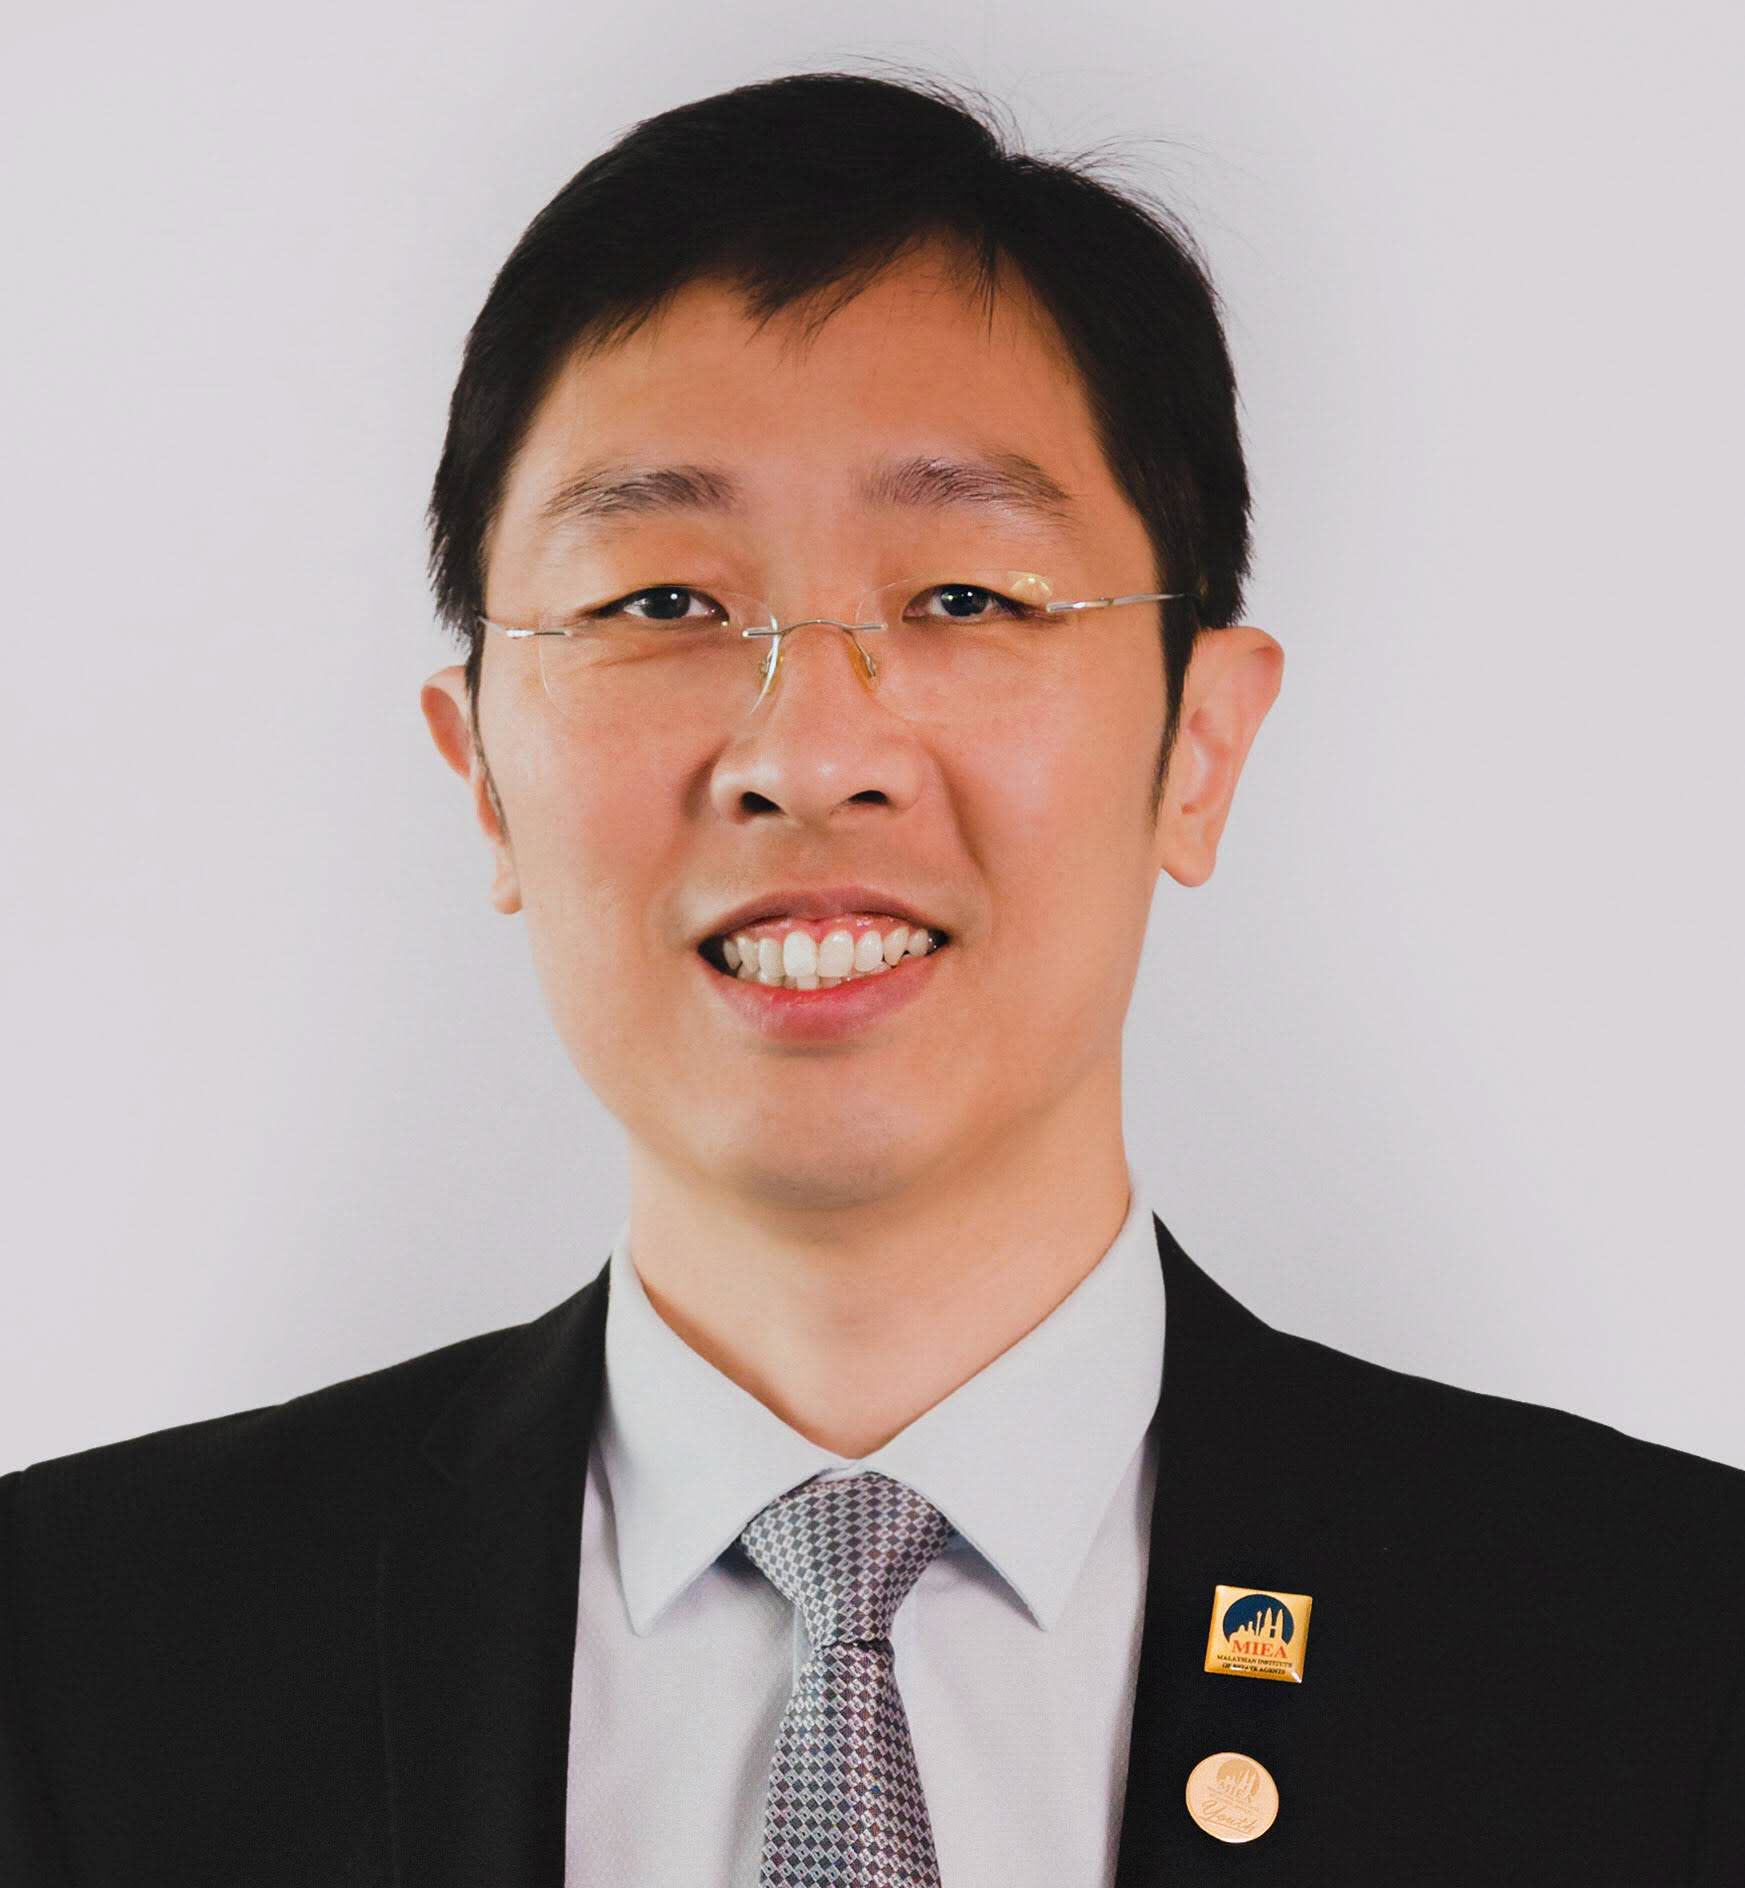 Yong Sein Law